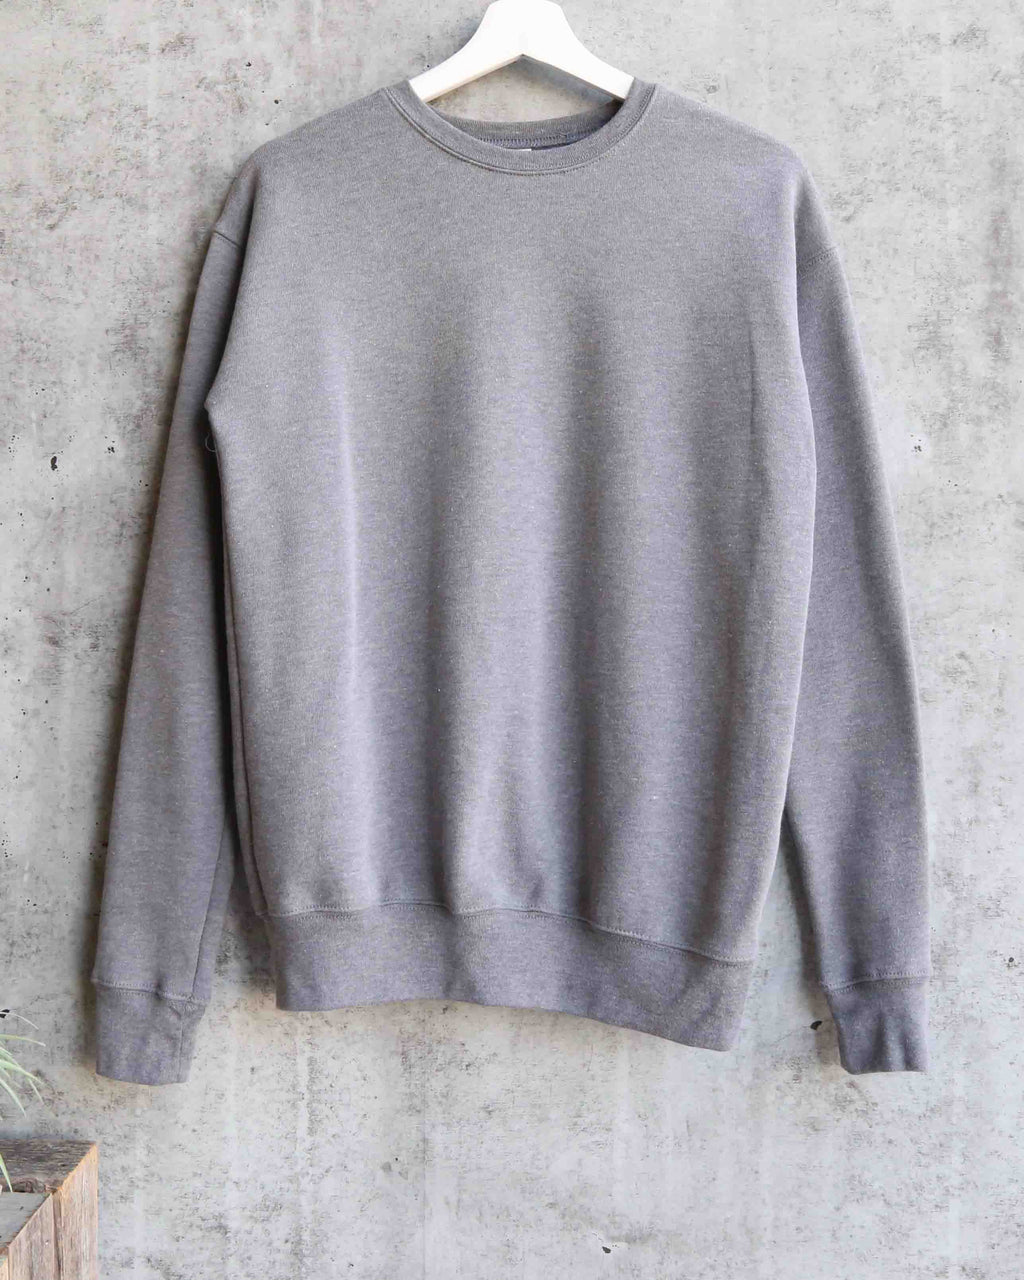 Distracted - Unisex Sponge Fleece Drop Shoulder Pullover Sweatshirt - Heather Grey